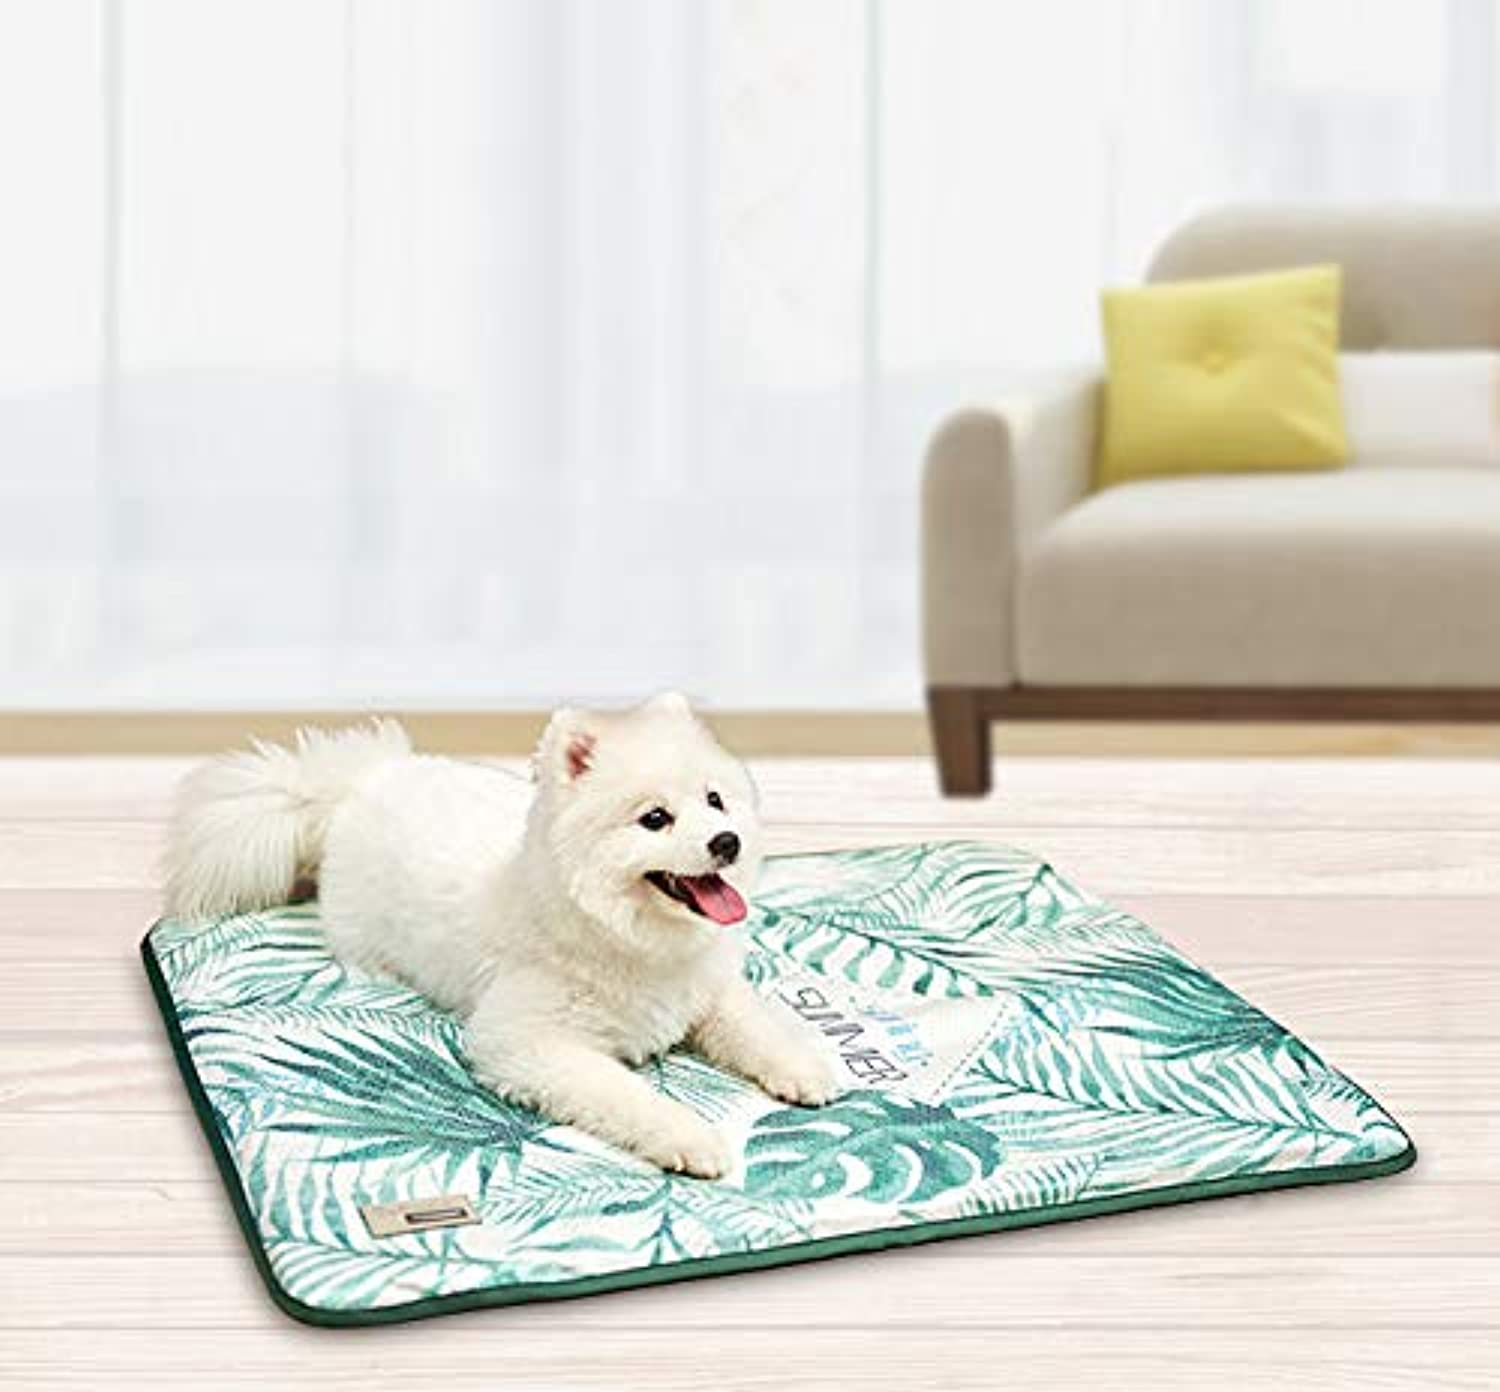 Dog Cooling Bed Pet Pad Non Sticking 2019 New Self Cool Summer Fast Heat Dissipation Continuously Cool for Kennels Crates and Beds Comfortable Cool Stuff